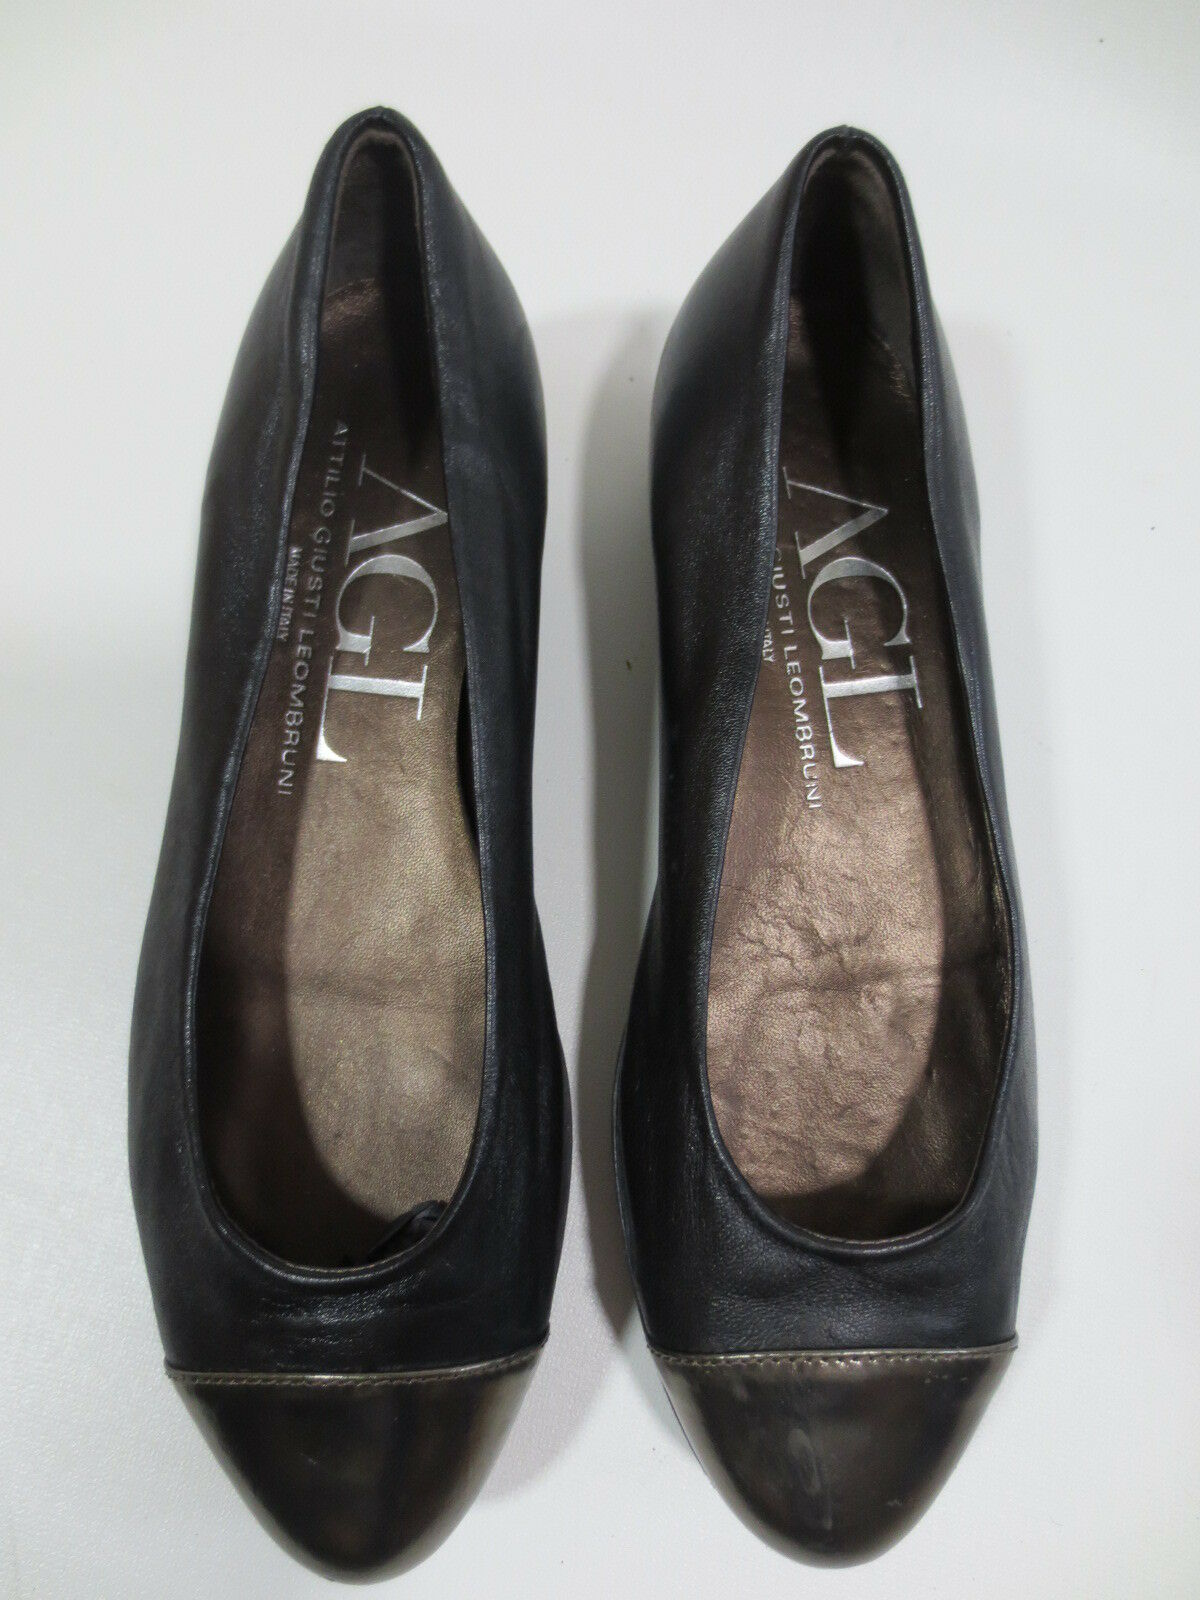 Ballerinas Agl Attilio Giusti Leombruni 37 Leather Black Mint Condition Z2